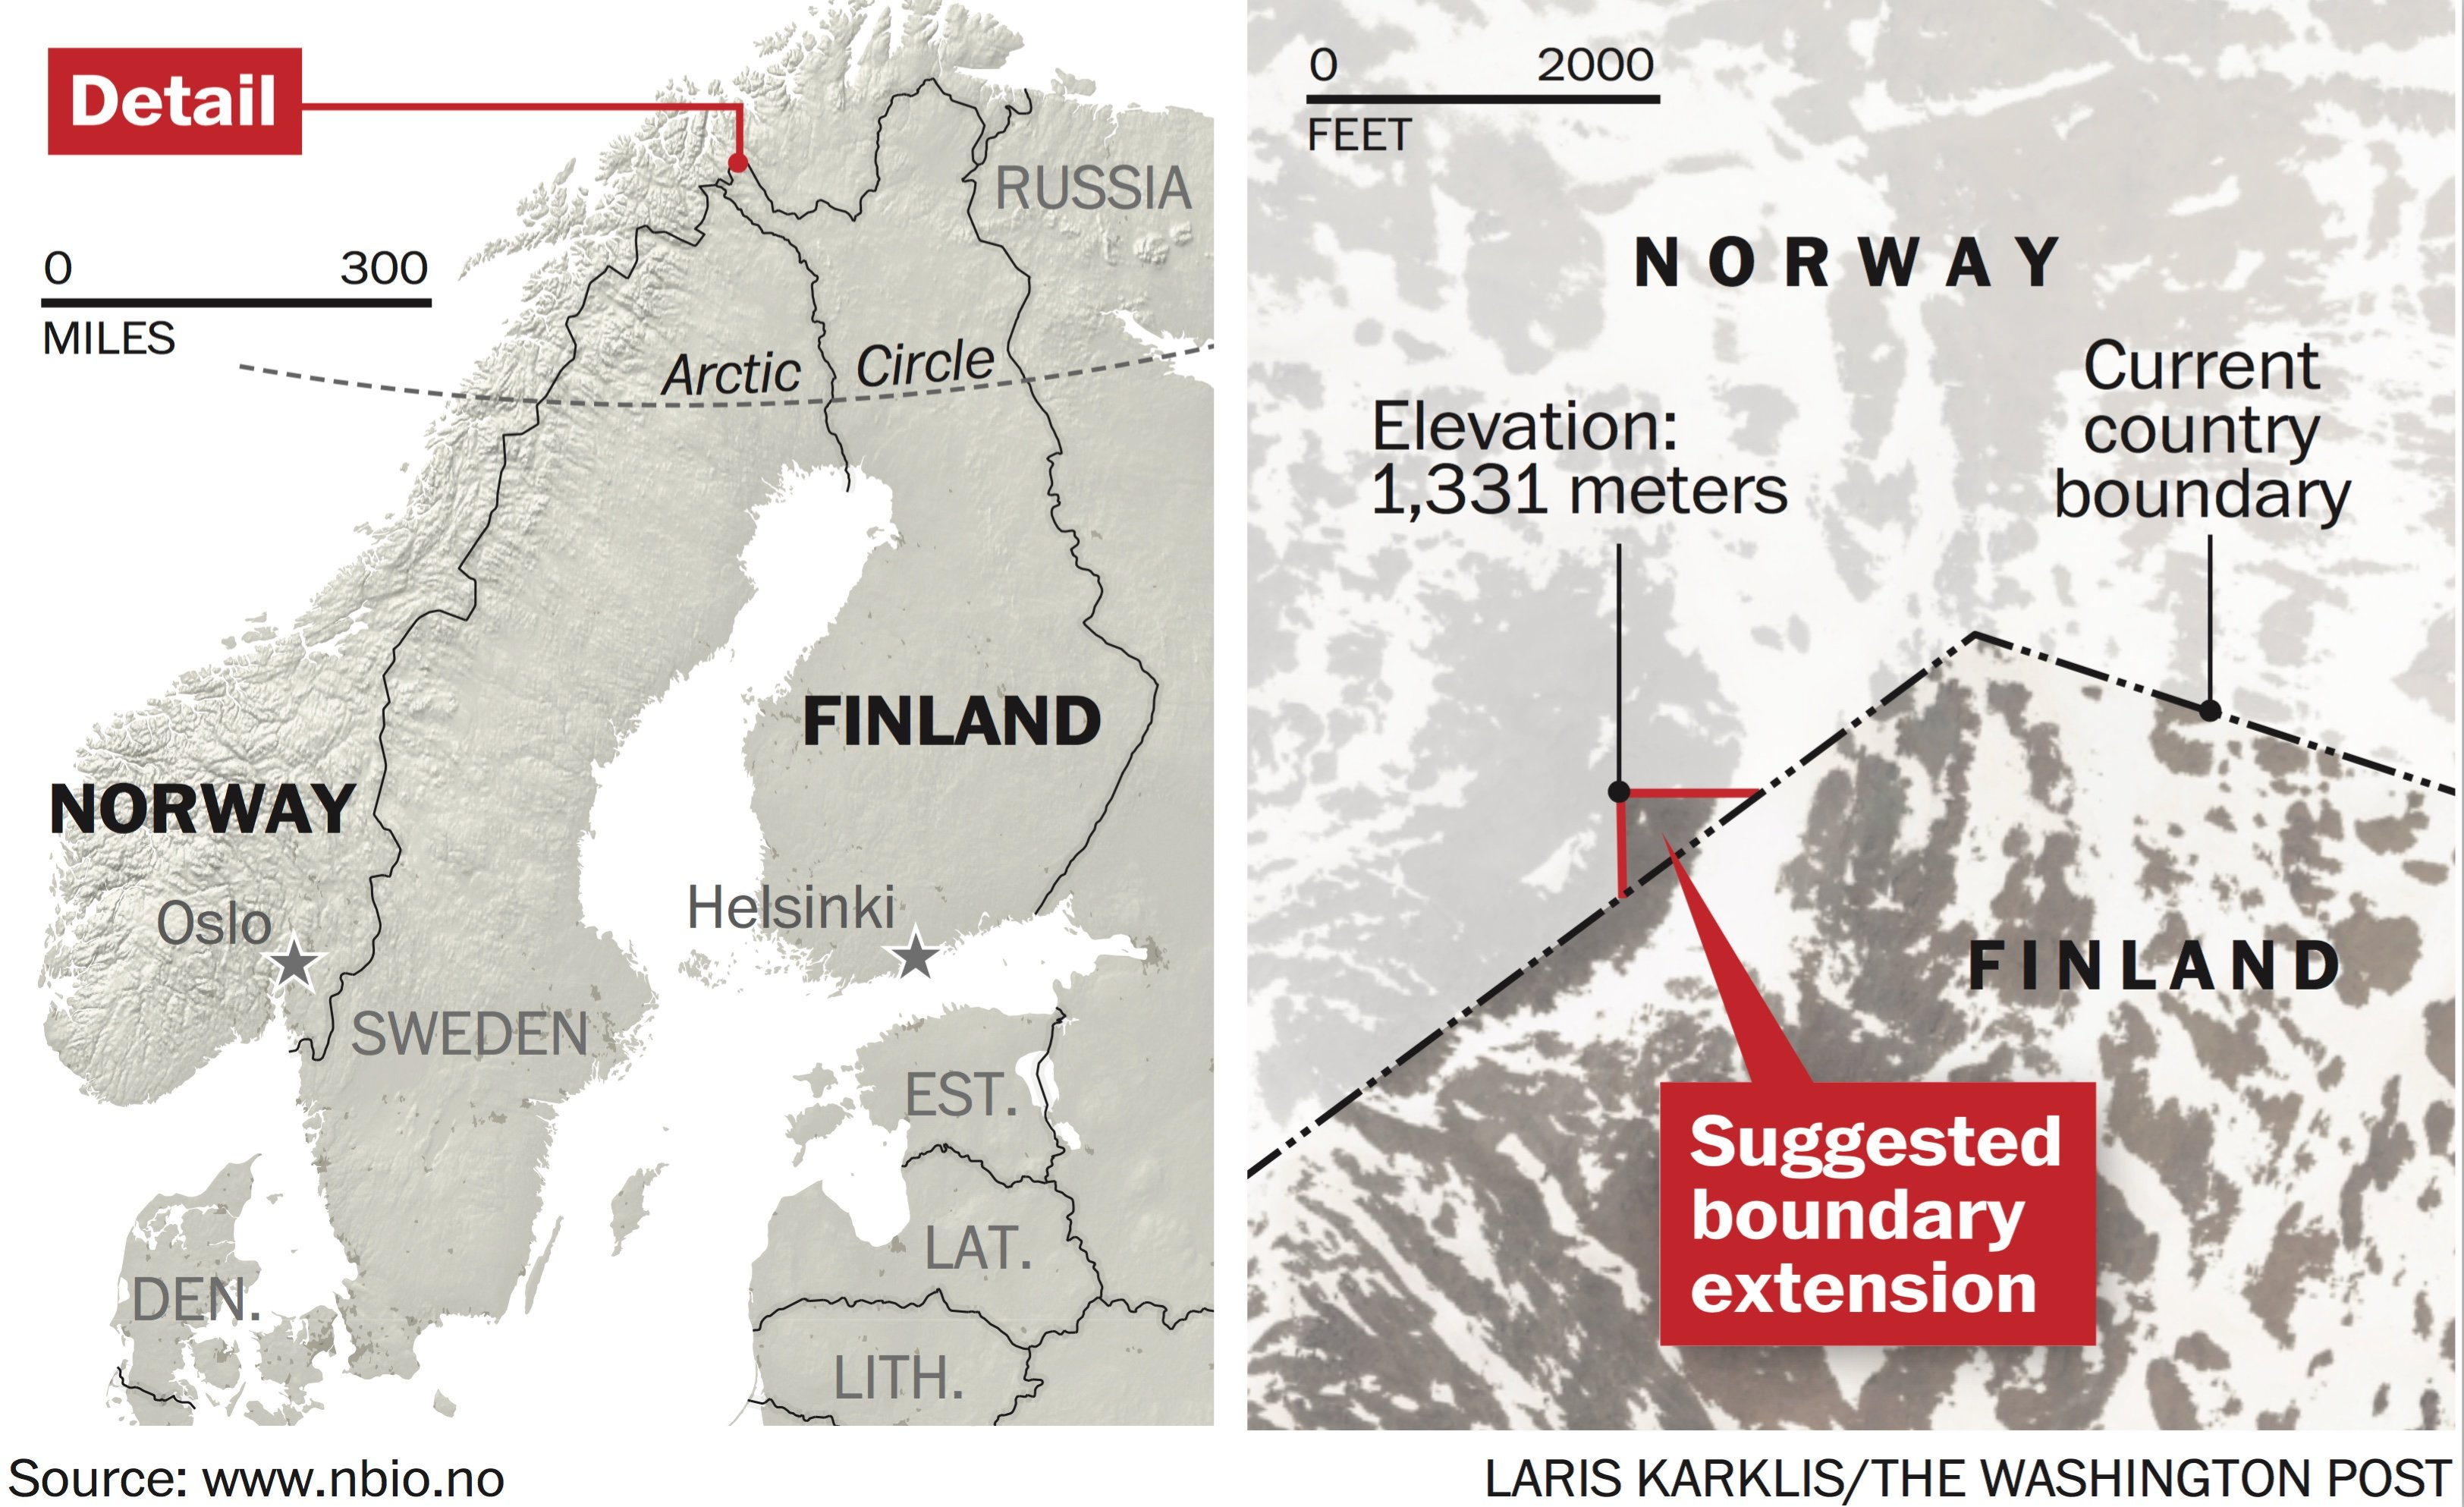 Norway won't give Finland the gift of a mountain peak after all